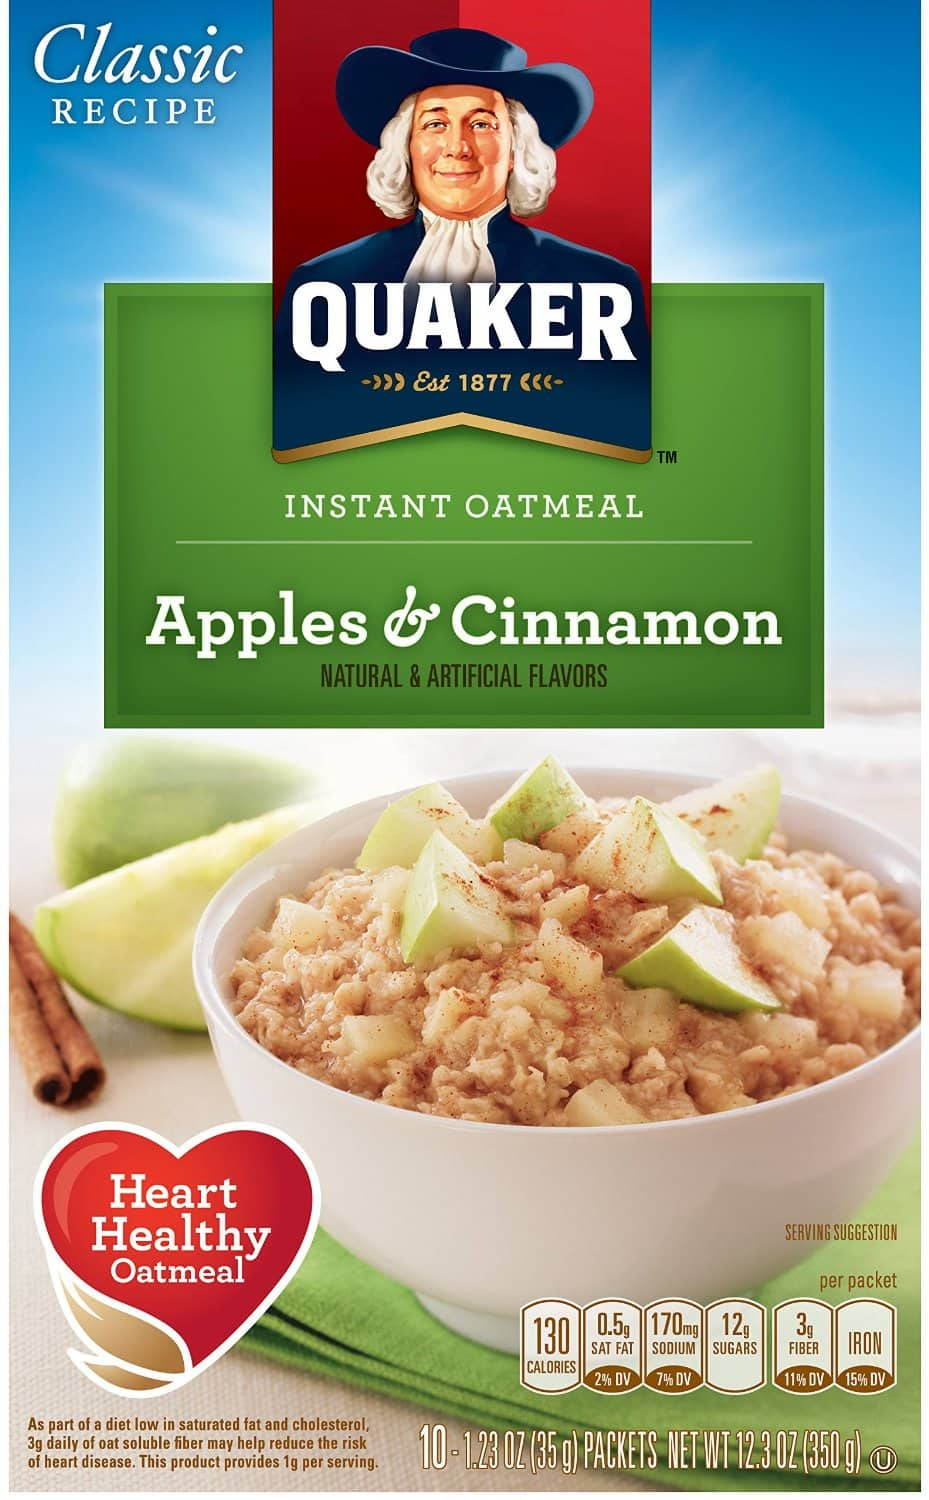 4 Pack of 10 Count Quaker Instant Oatmeal - Apples & Cinnamon - $7.73 AC S&S ($6.97 AC & 5 S&S Orders) + Free Shipping - Amazon